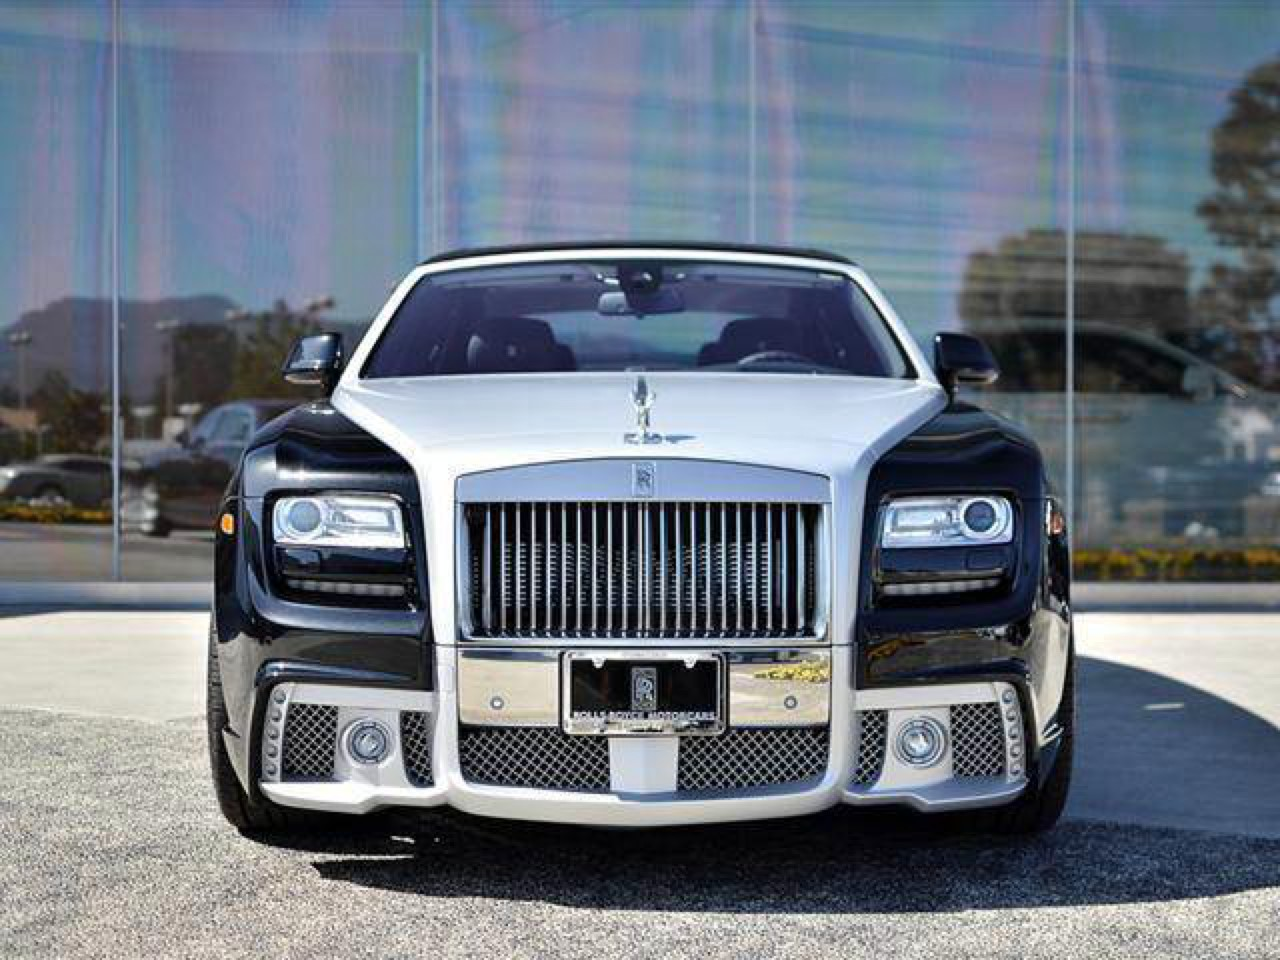 2017 wald rolls royce phantom black bison car photos catalog 2018. Black Bedroom Furniture Sets. Home Design Ideas